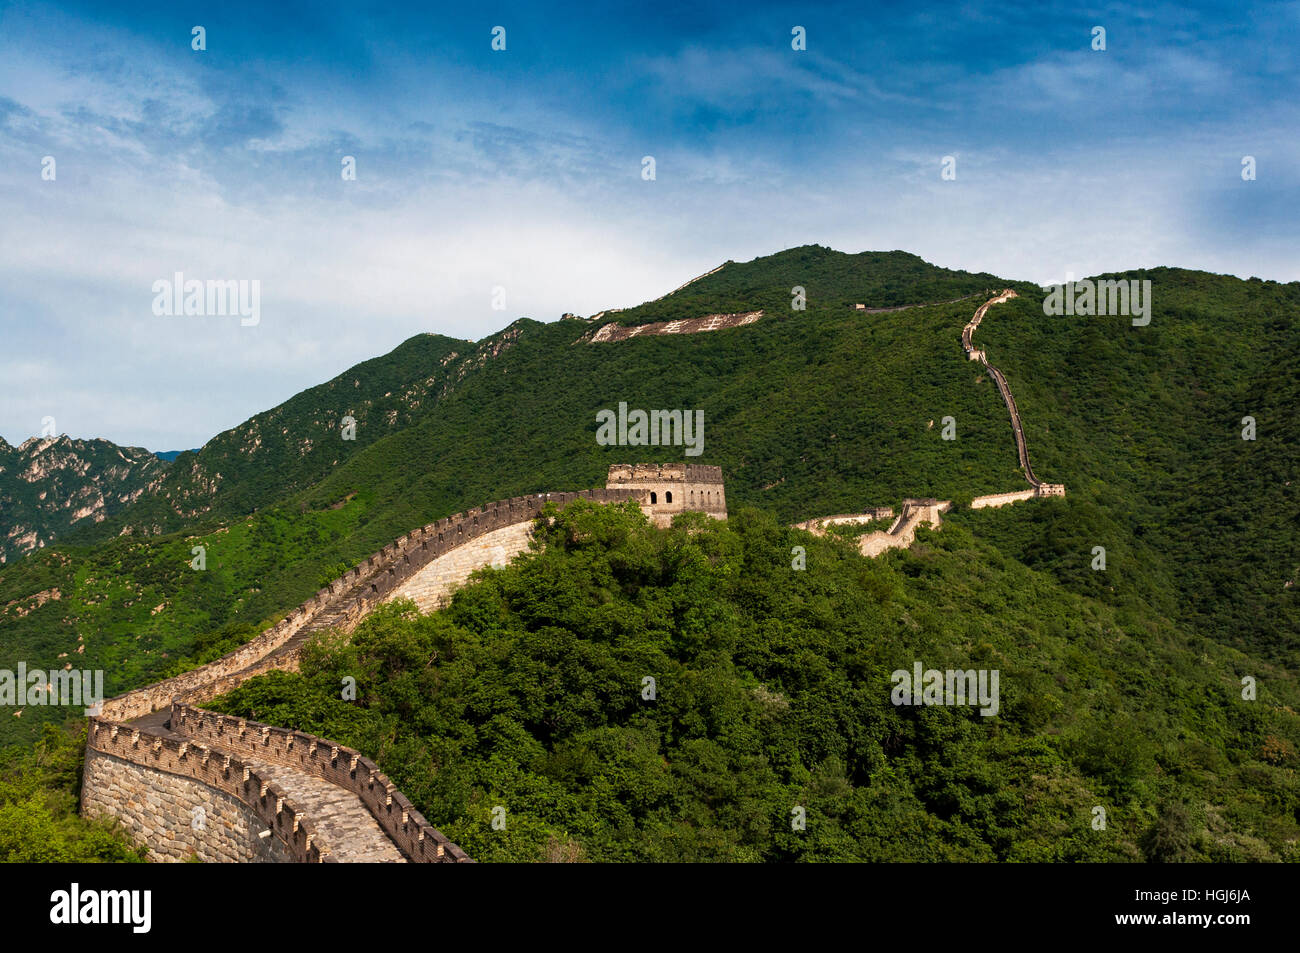 View of the China Great Wall in Mutianyu, China; Concept for travel in China - Stock Image